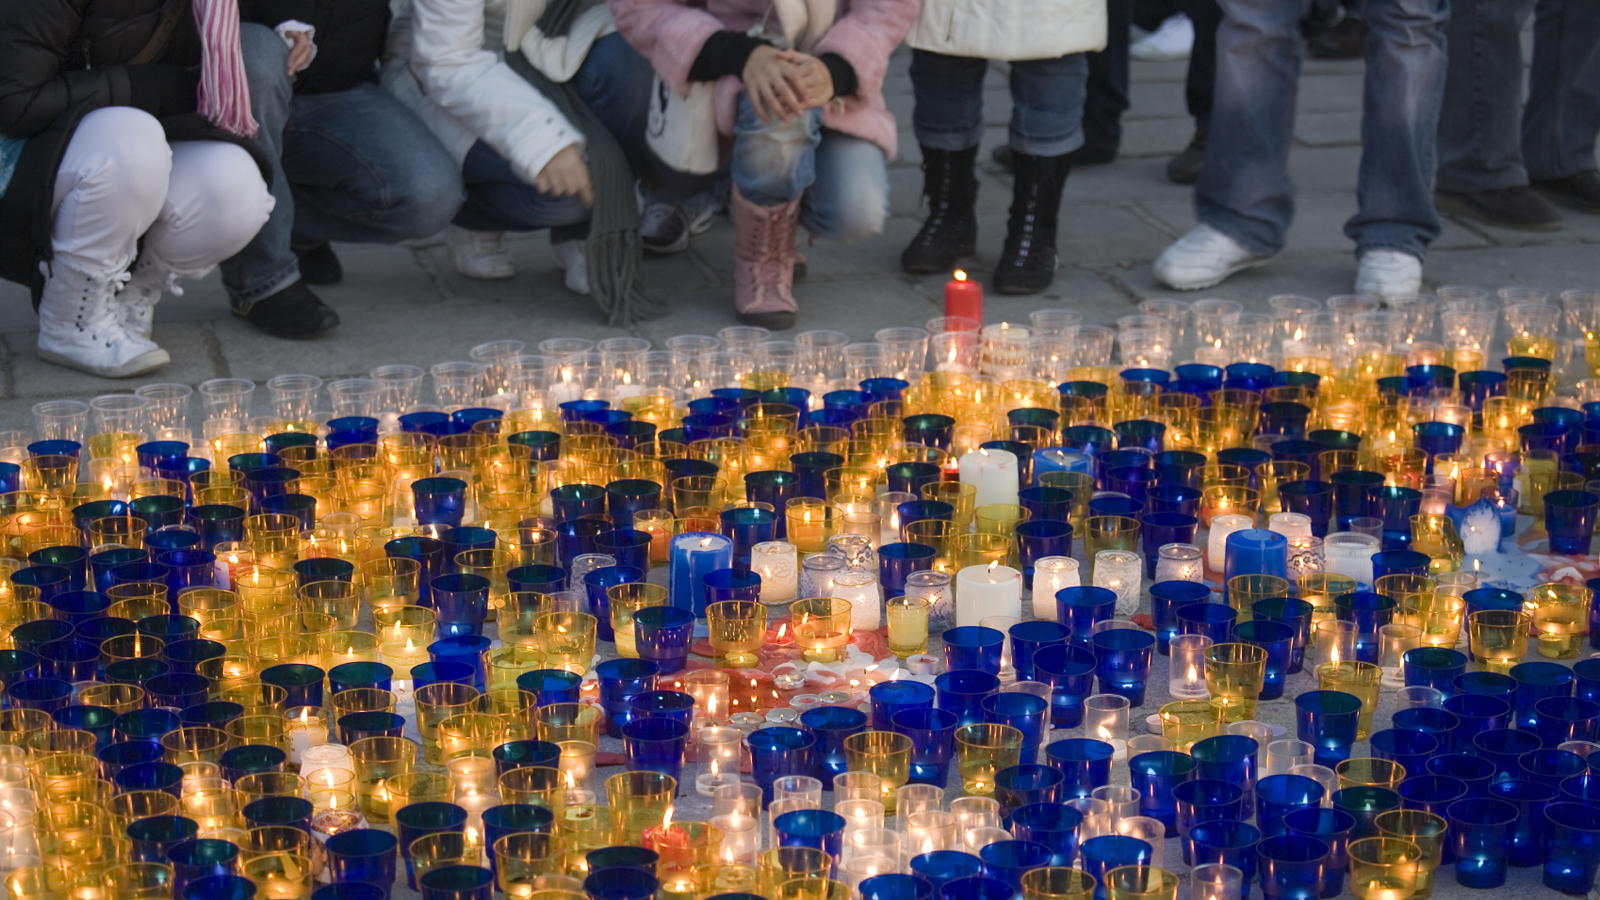 People Kneeling by Blue, Yellow, and White Votive Candles